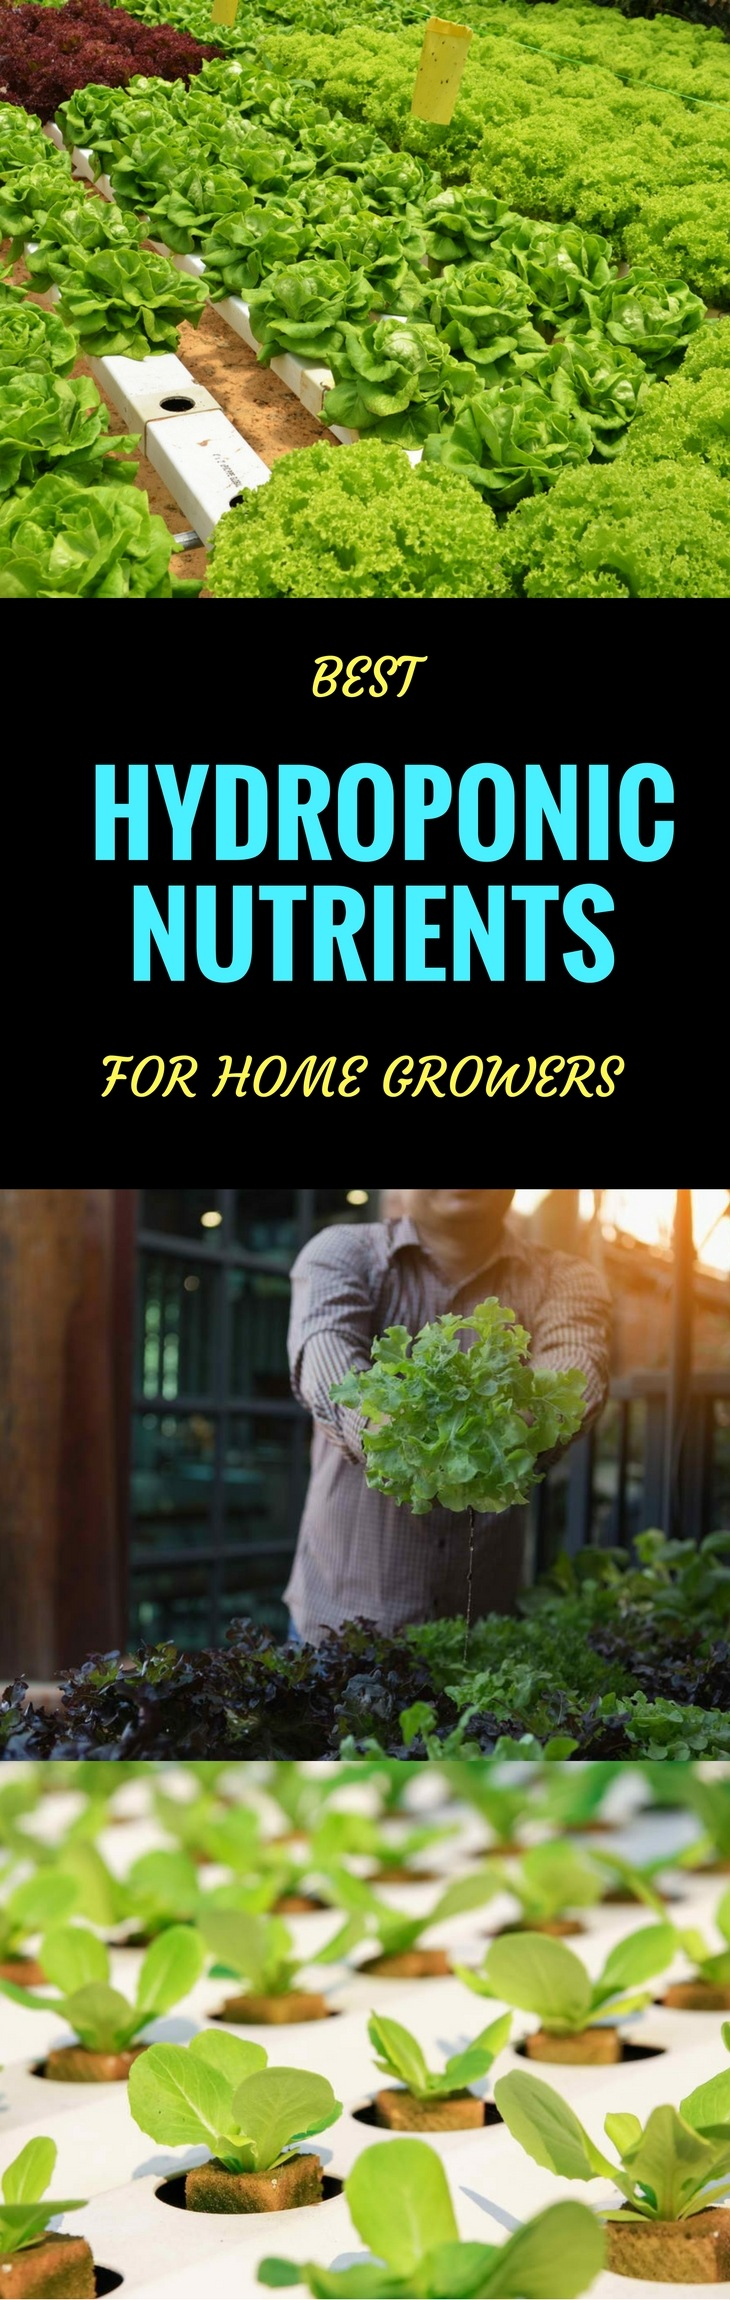 HYDROPONIC NUTRIENTS pin it